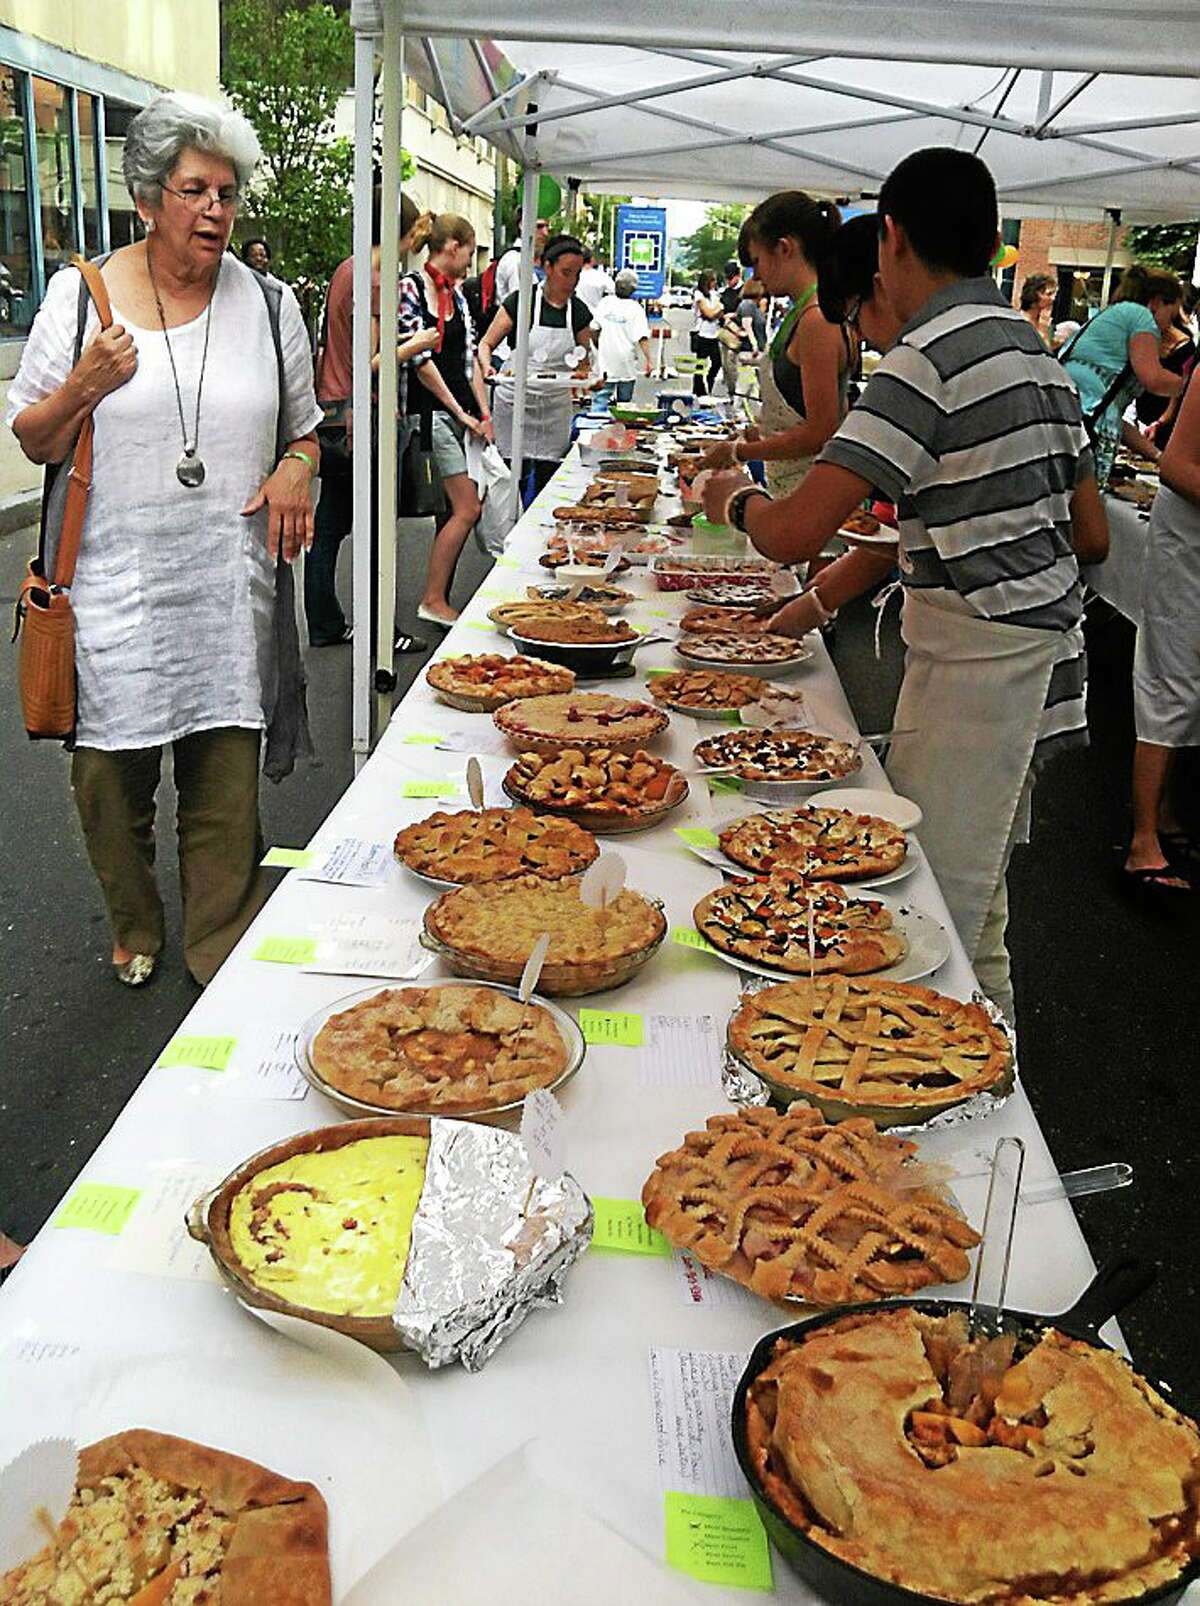 Enthusiastic tasters turned out for last year's Pie On 9 in New Haven.